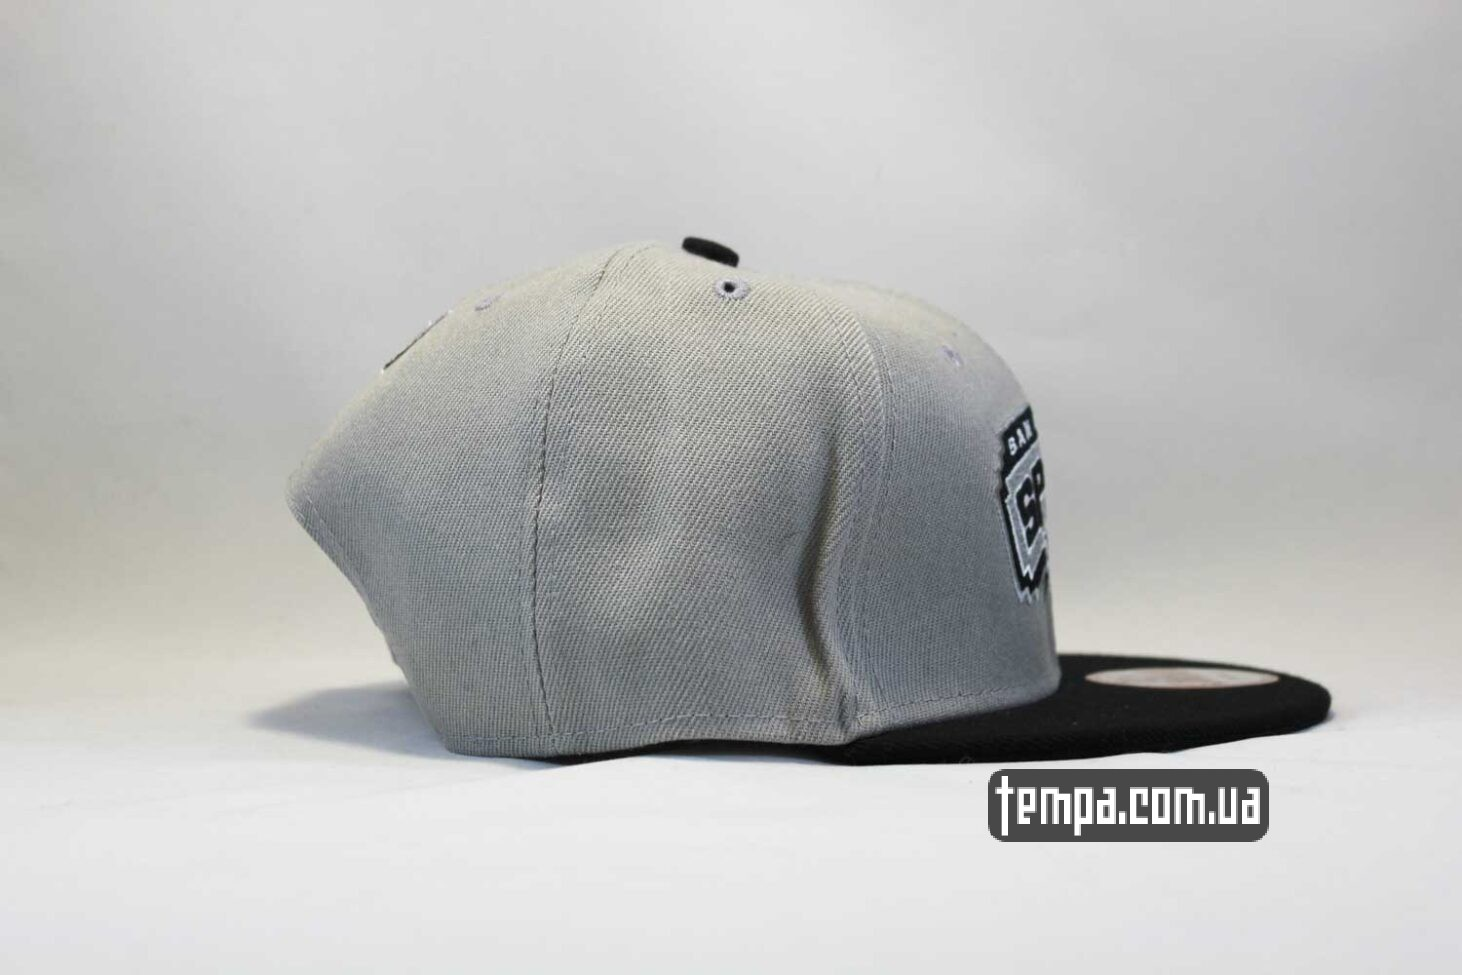 Сперс Спурс Баскетбол кепка snapback Spurs San Antonio NewEra 9fifty серая